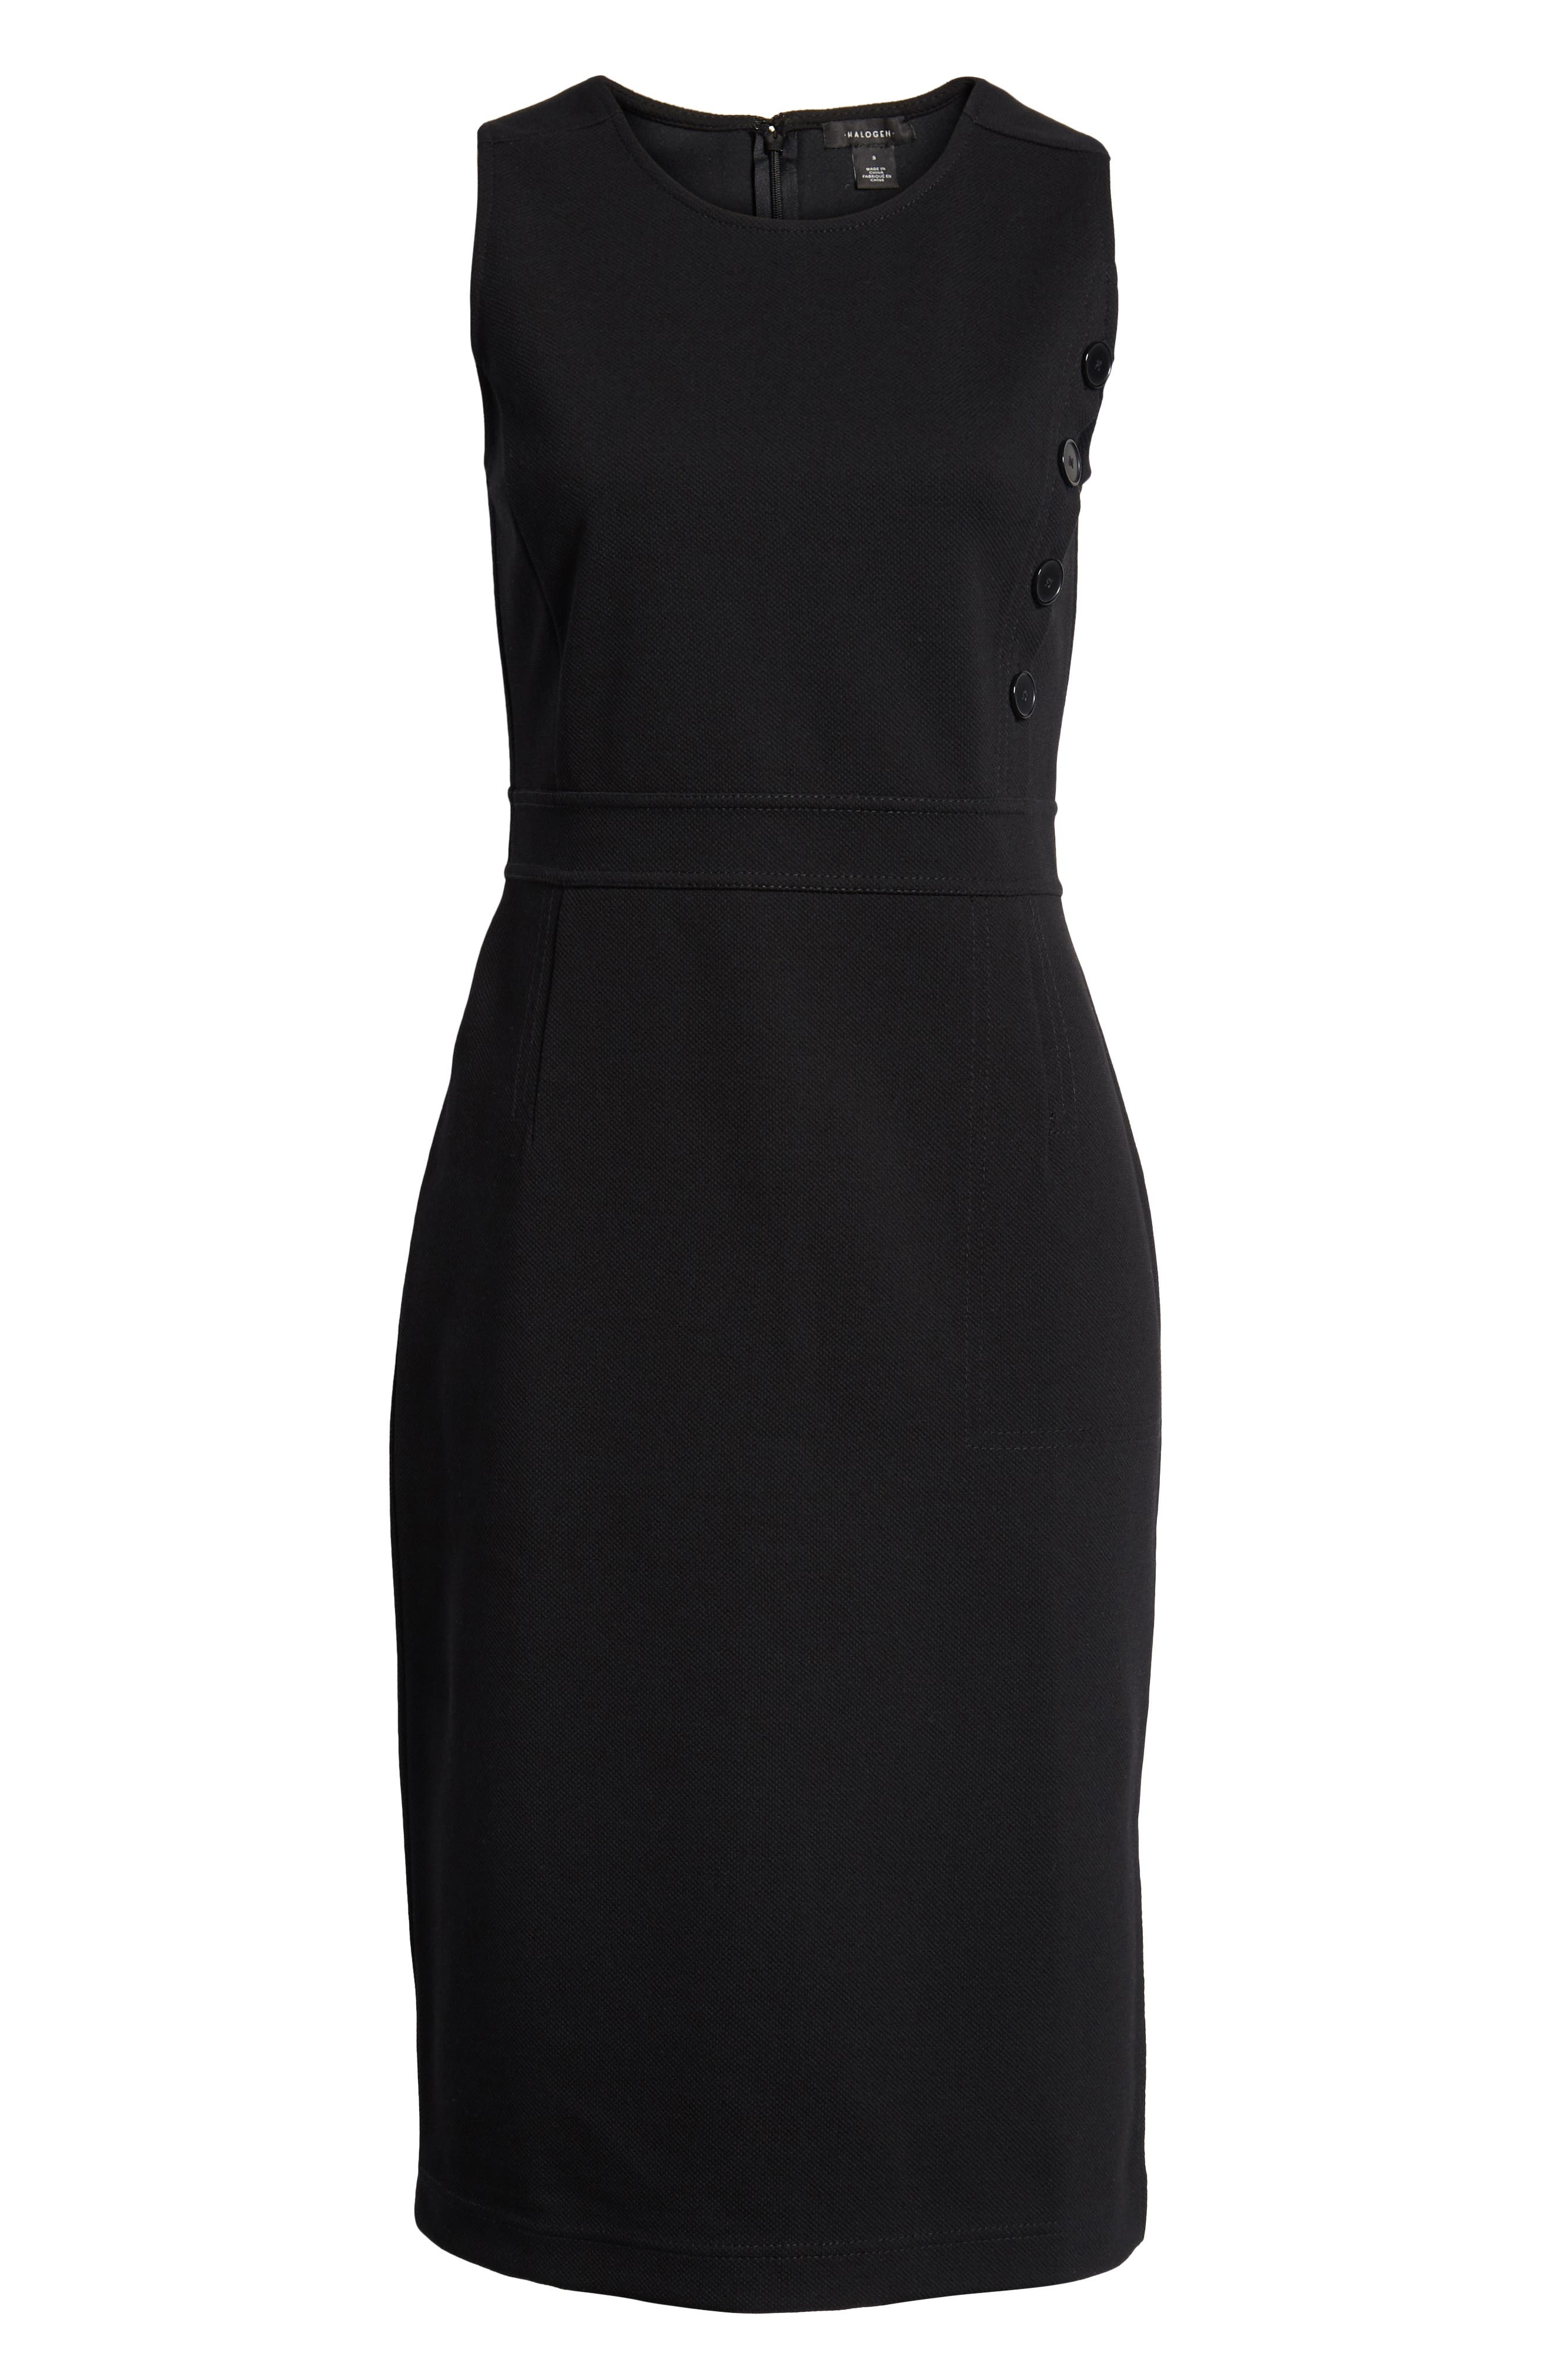 Knit Sheath Dress,                             Alternate thumbnail 7, color,                             Black